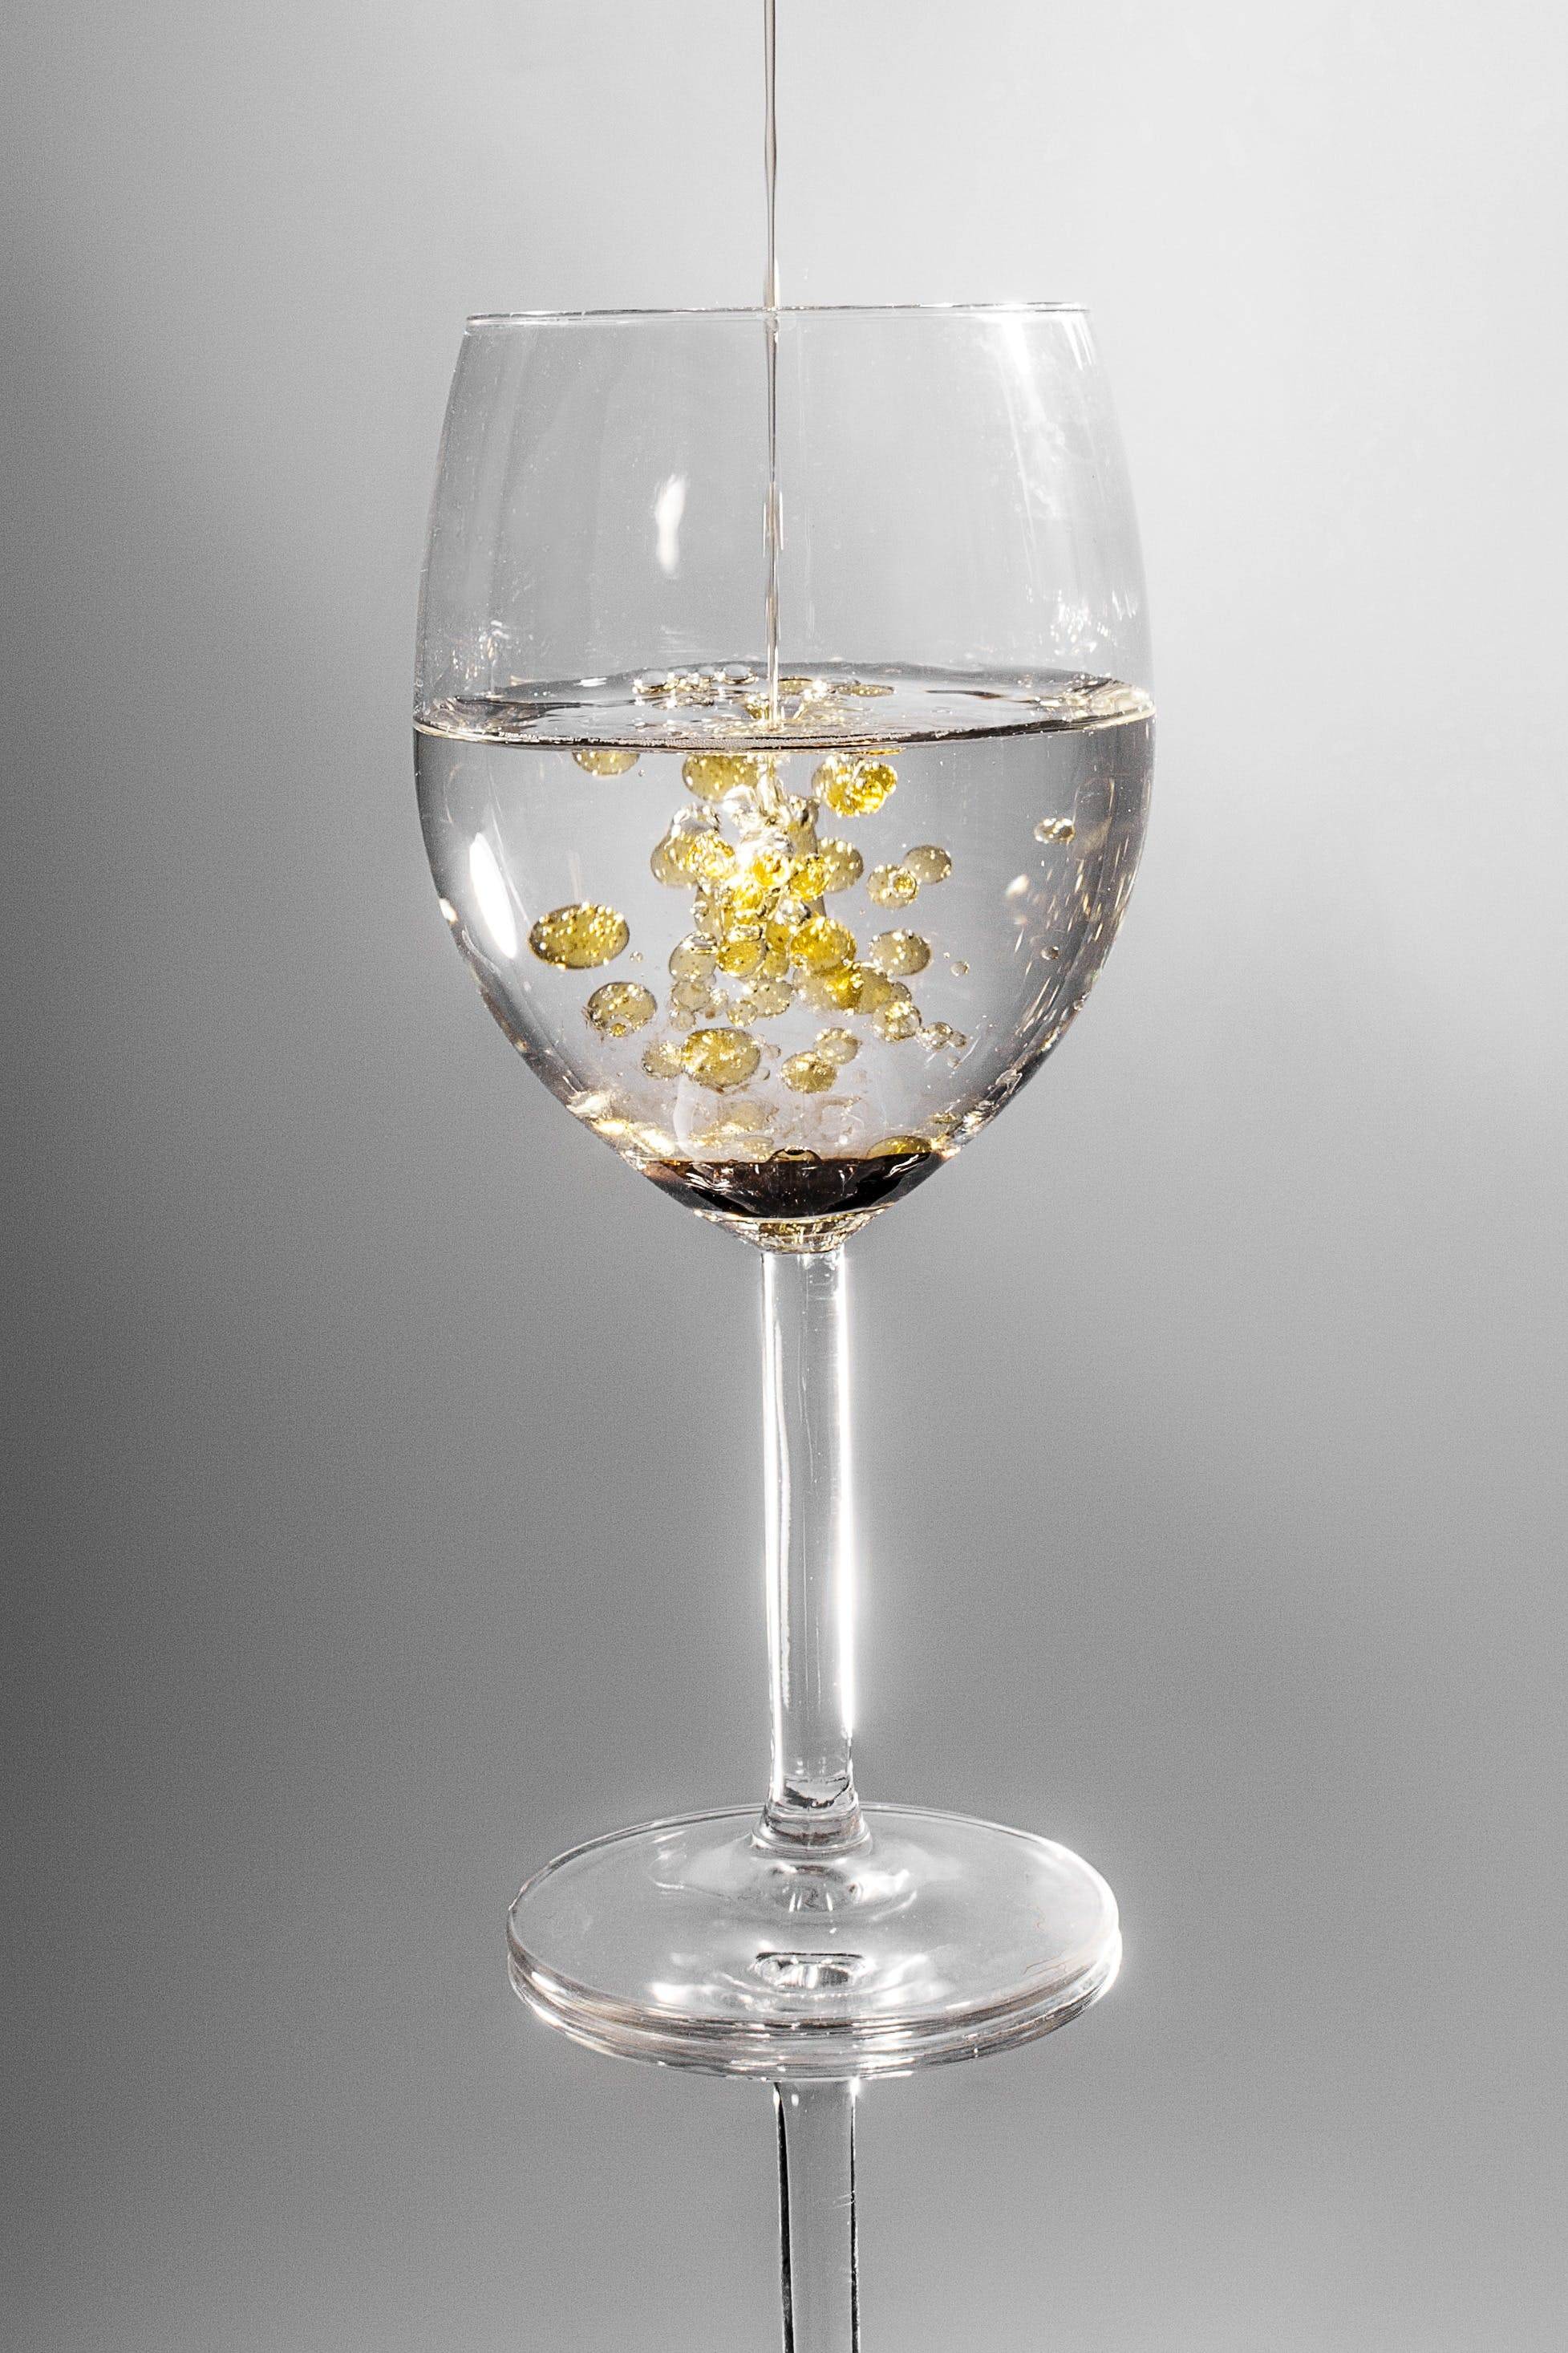 Clear Long Stem Wine Glass With Yellow Liquid